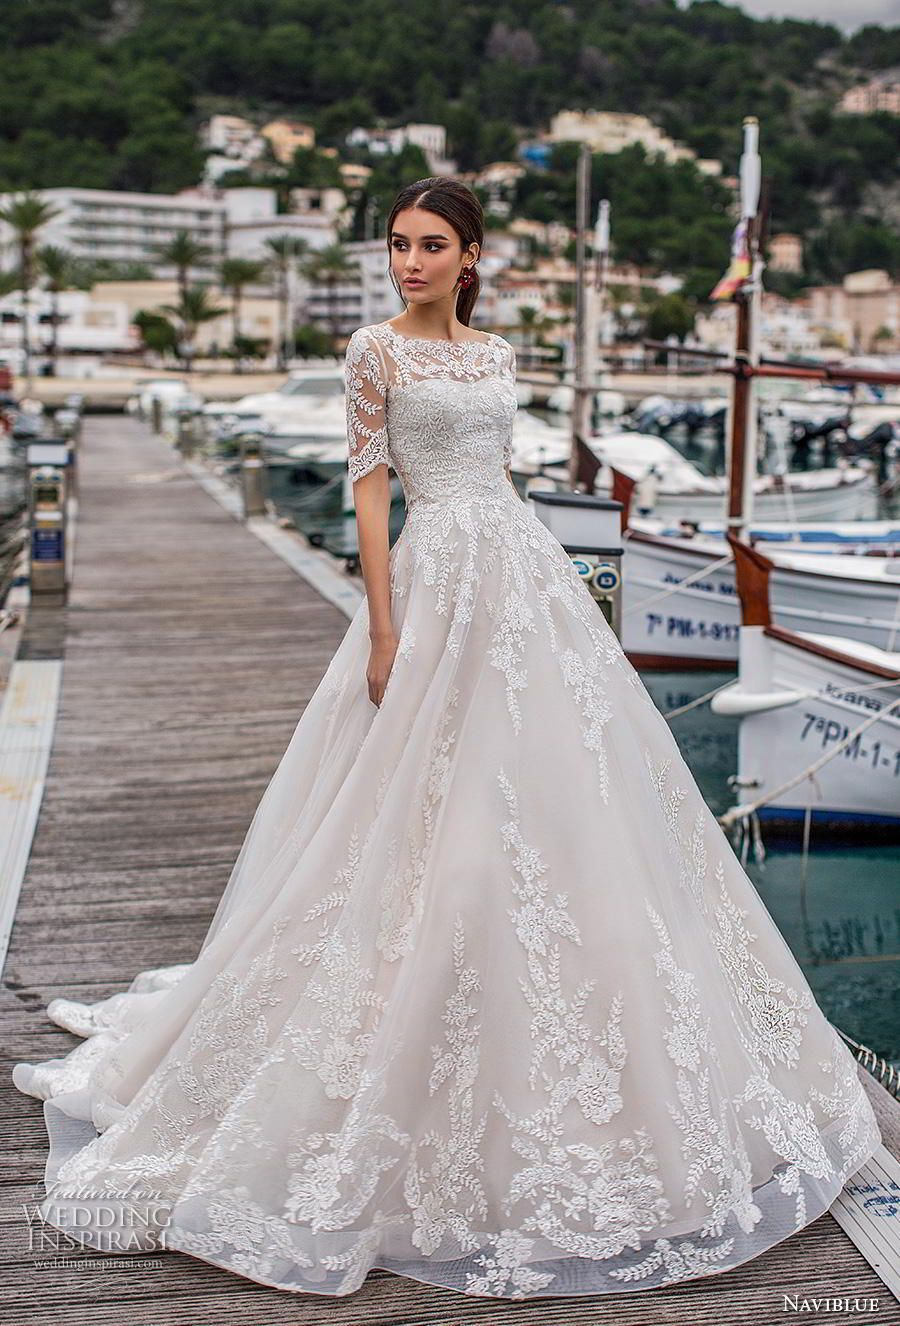 f47f153000 naviblue 2019 bridal half sleeves illusion bateau sweetheart neckline  heavily embellished bodice hem a line wedding dress lace back chapel train  (14) mv ...